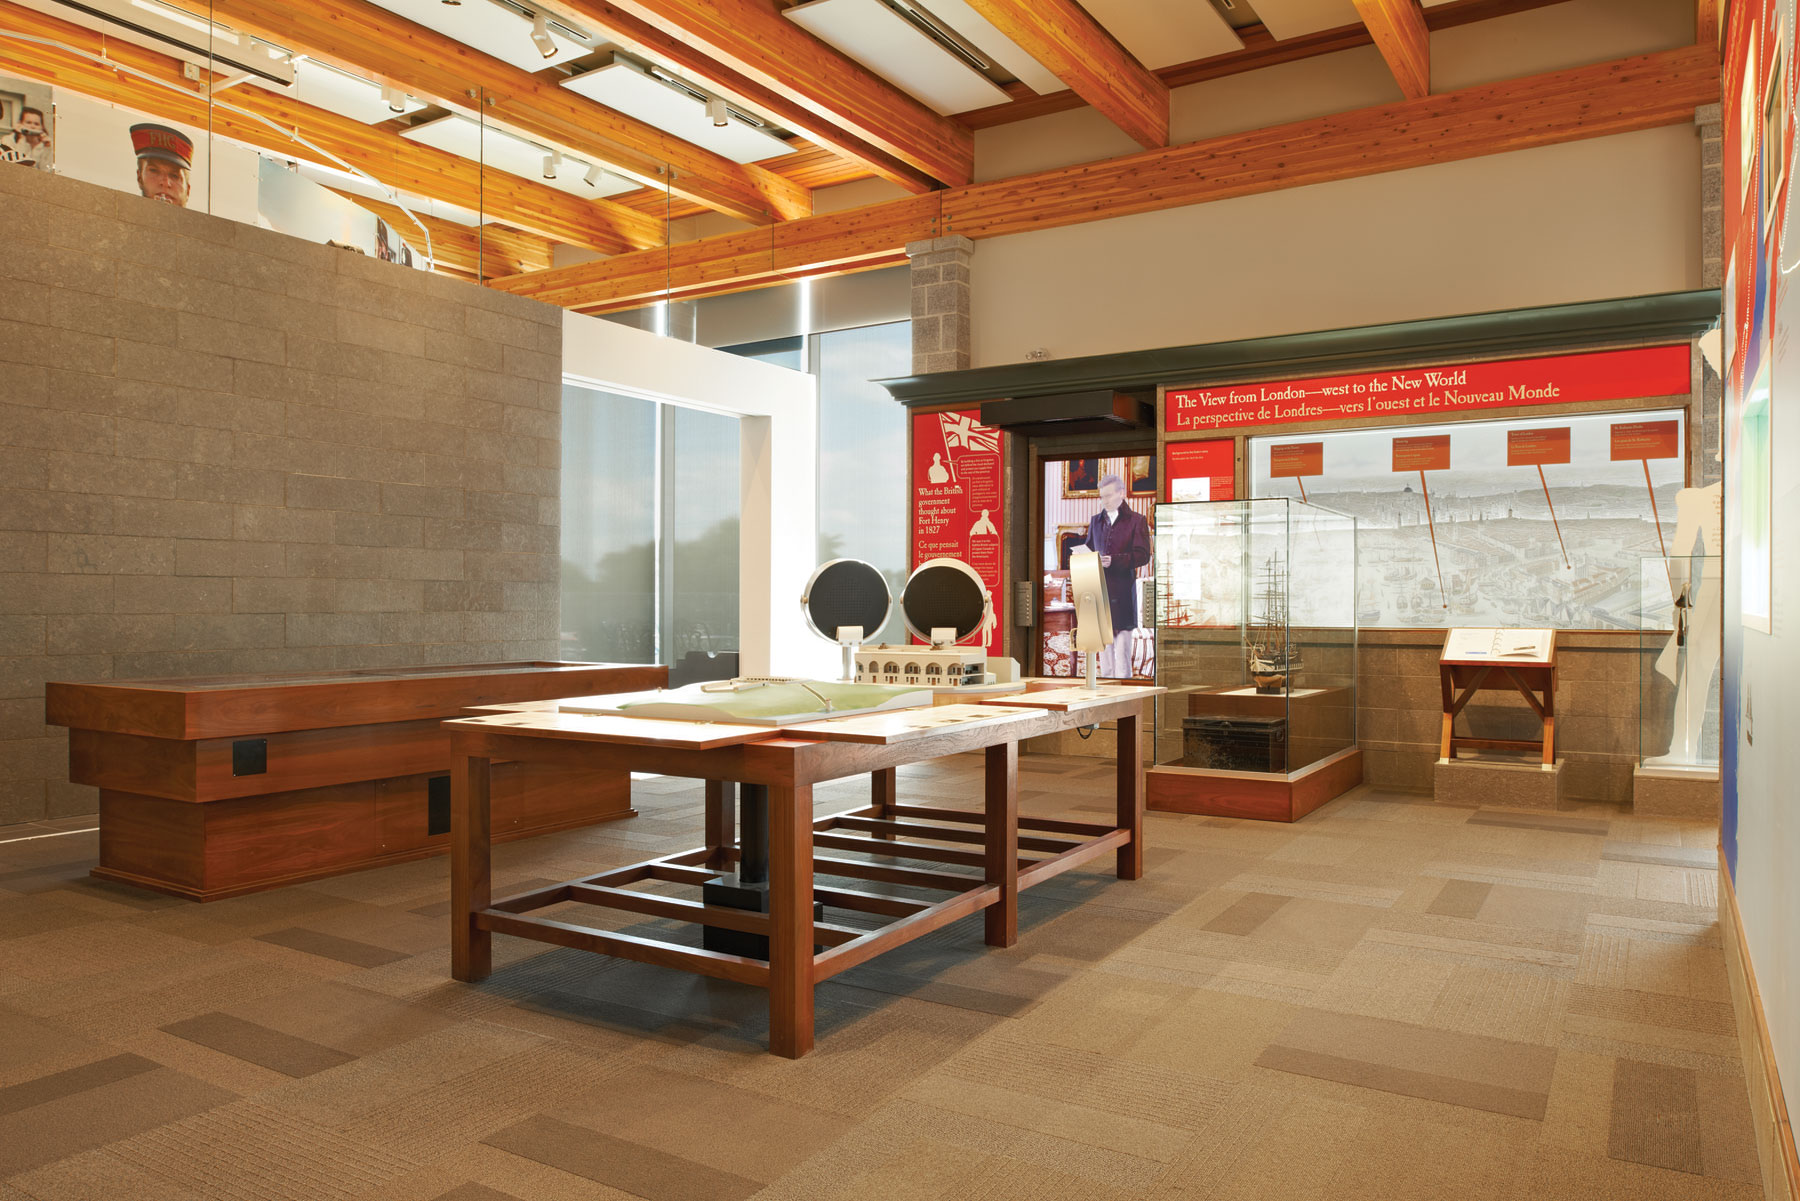 Exhibit space with floor and wall displays, stone wall on left and wood rafter ceilings